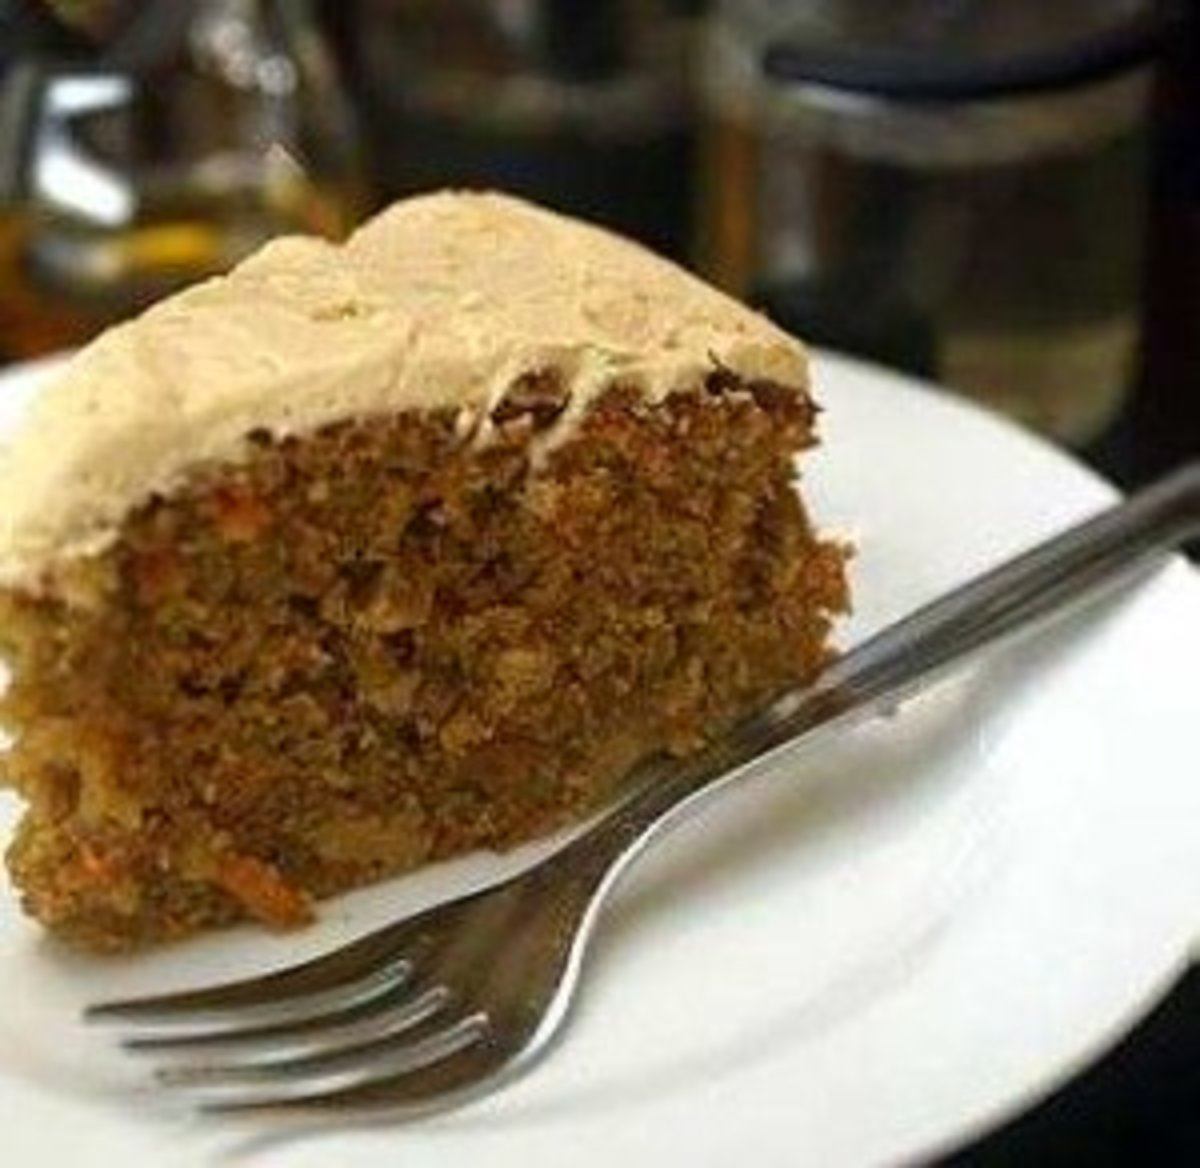 Best Low Fat Carrot Cake Recipe - Using Grape Seed Oil Instead of Butter or Margarine